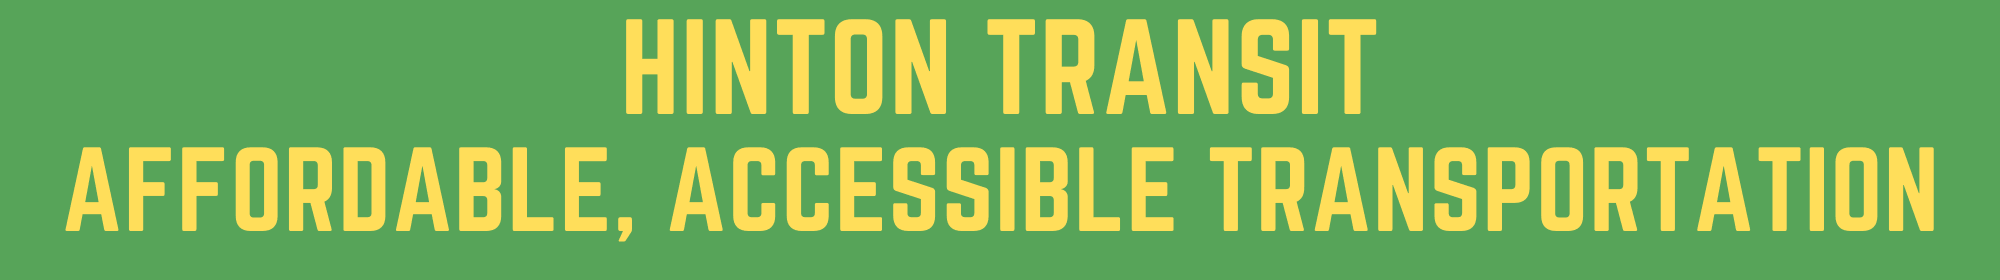 HINTON TRANSIT affordable, accessible transportation